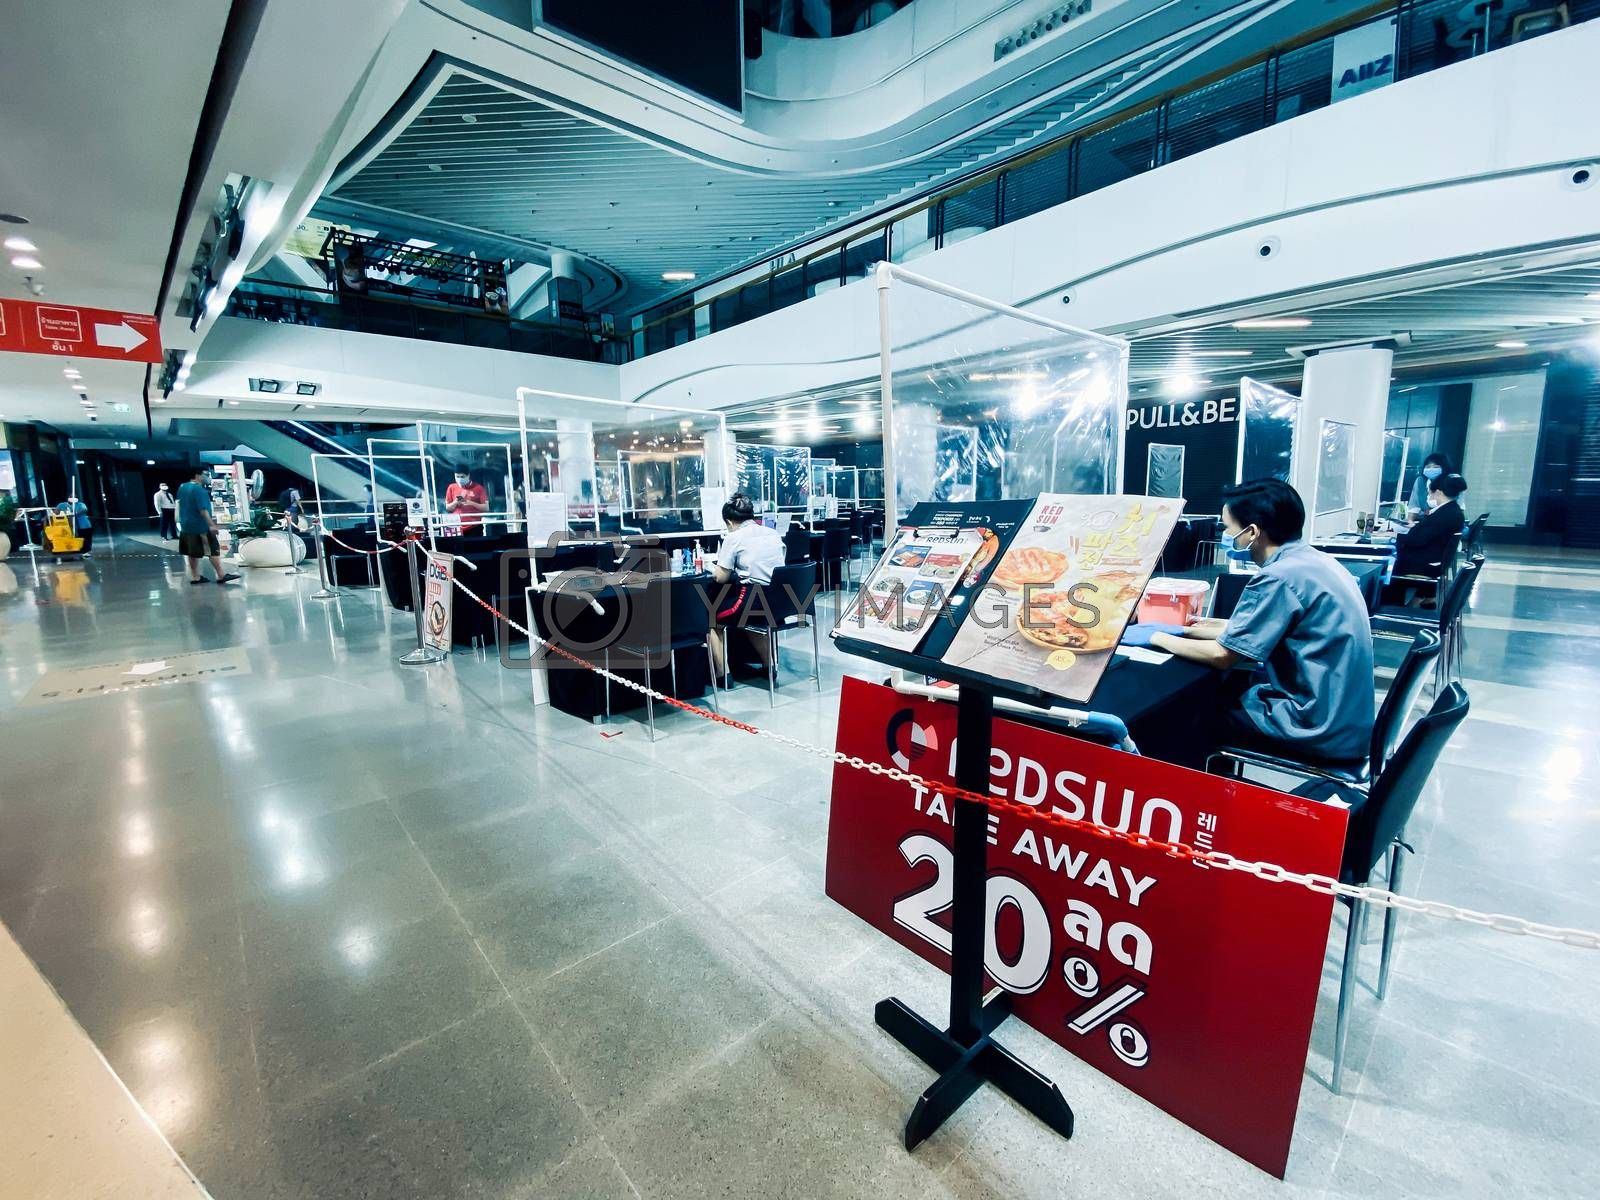 Food order booths for restaurants in shopping mall in Bangkok during COVID-19 situation. The mall adopted area during city lockdown because of coronavirus pandemic